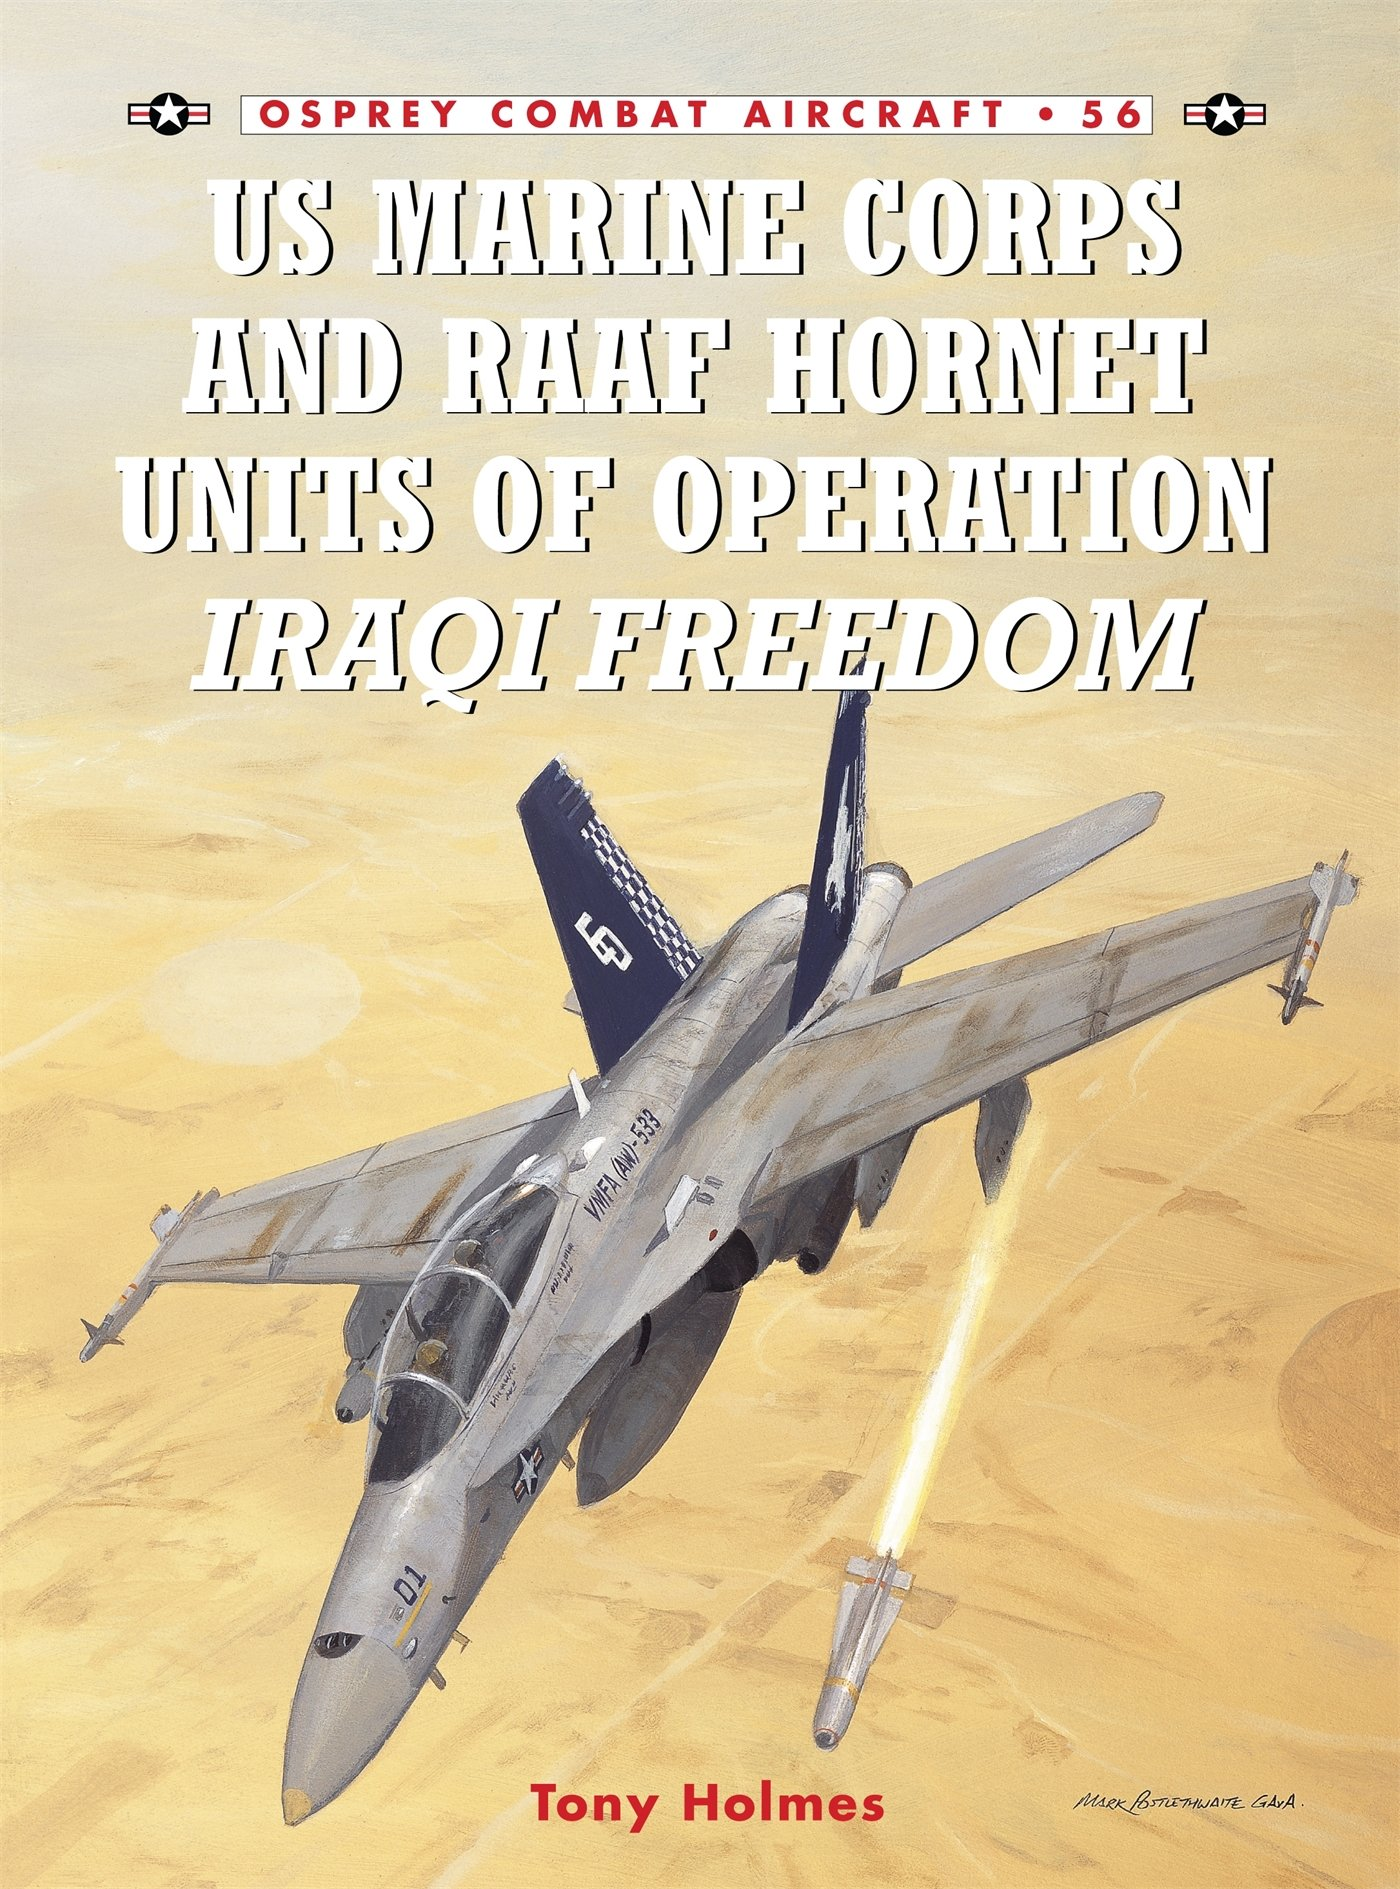 US Marine Corps And RAAF Hornet Units Of Operation Iraqi Freedom  Combat Aircraft Band 56